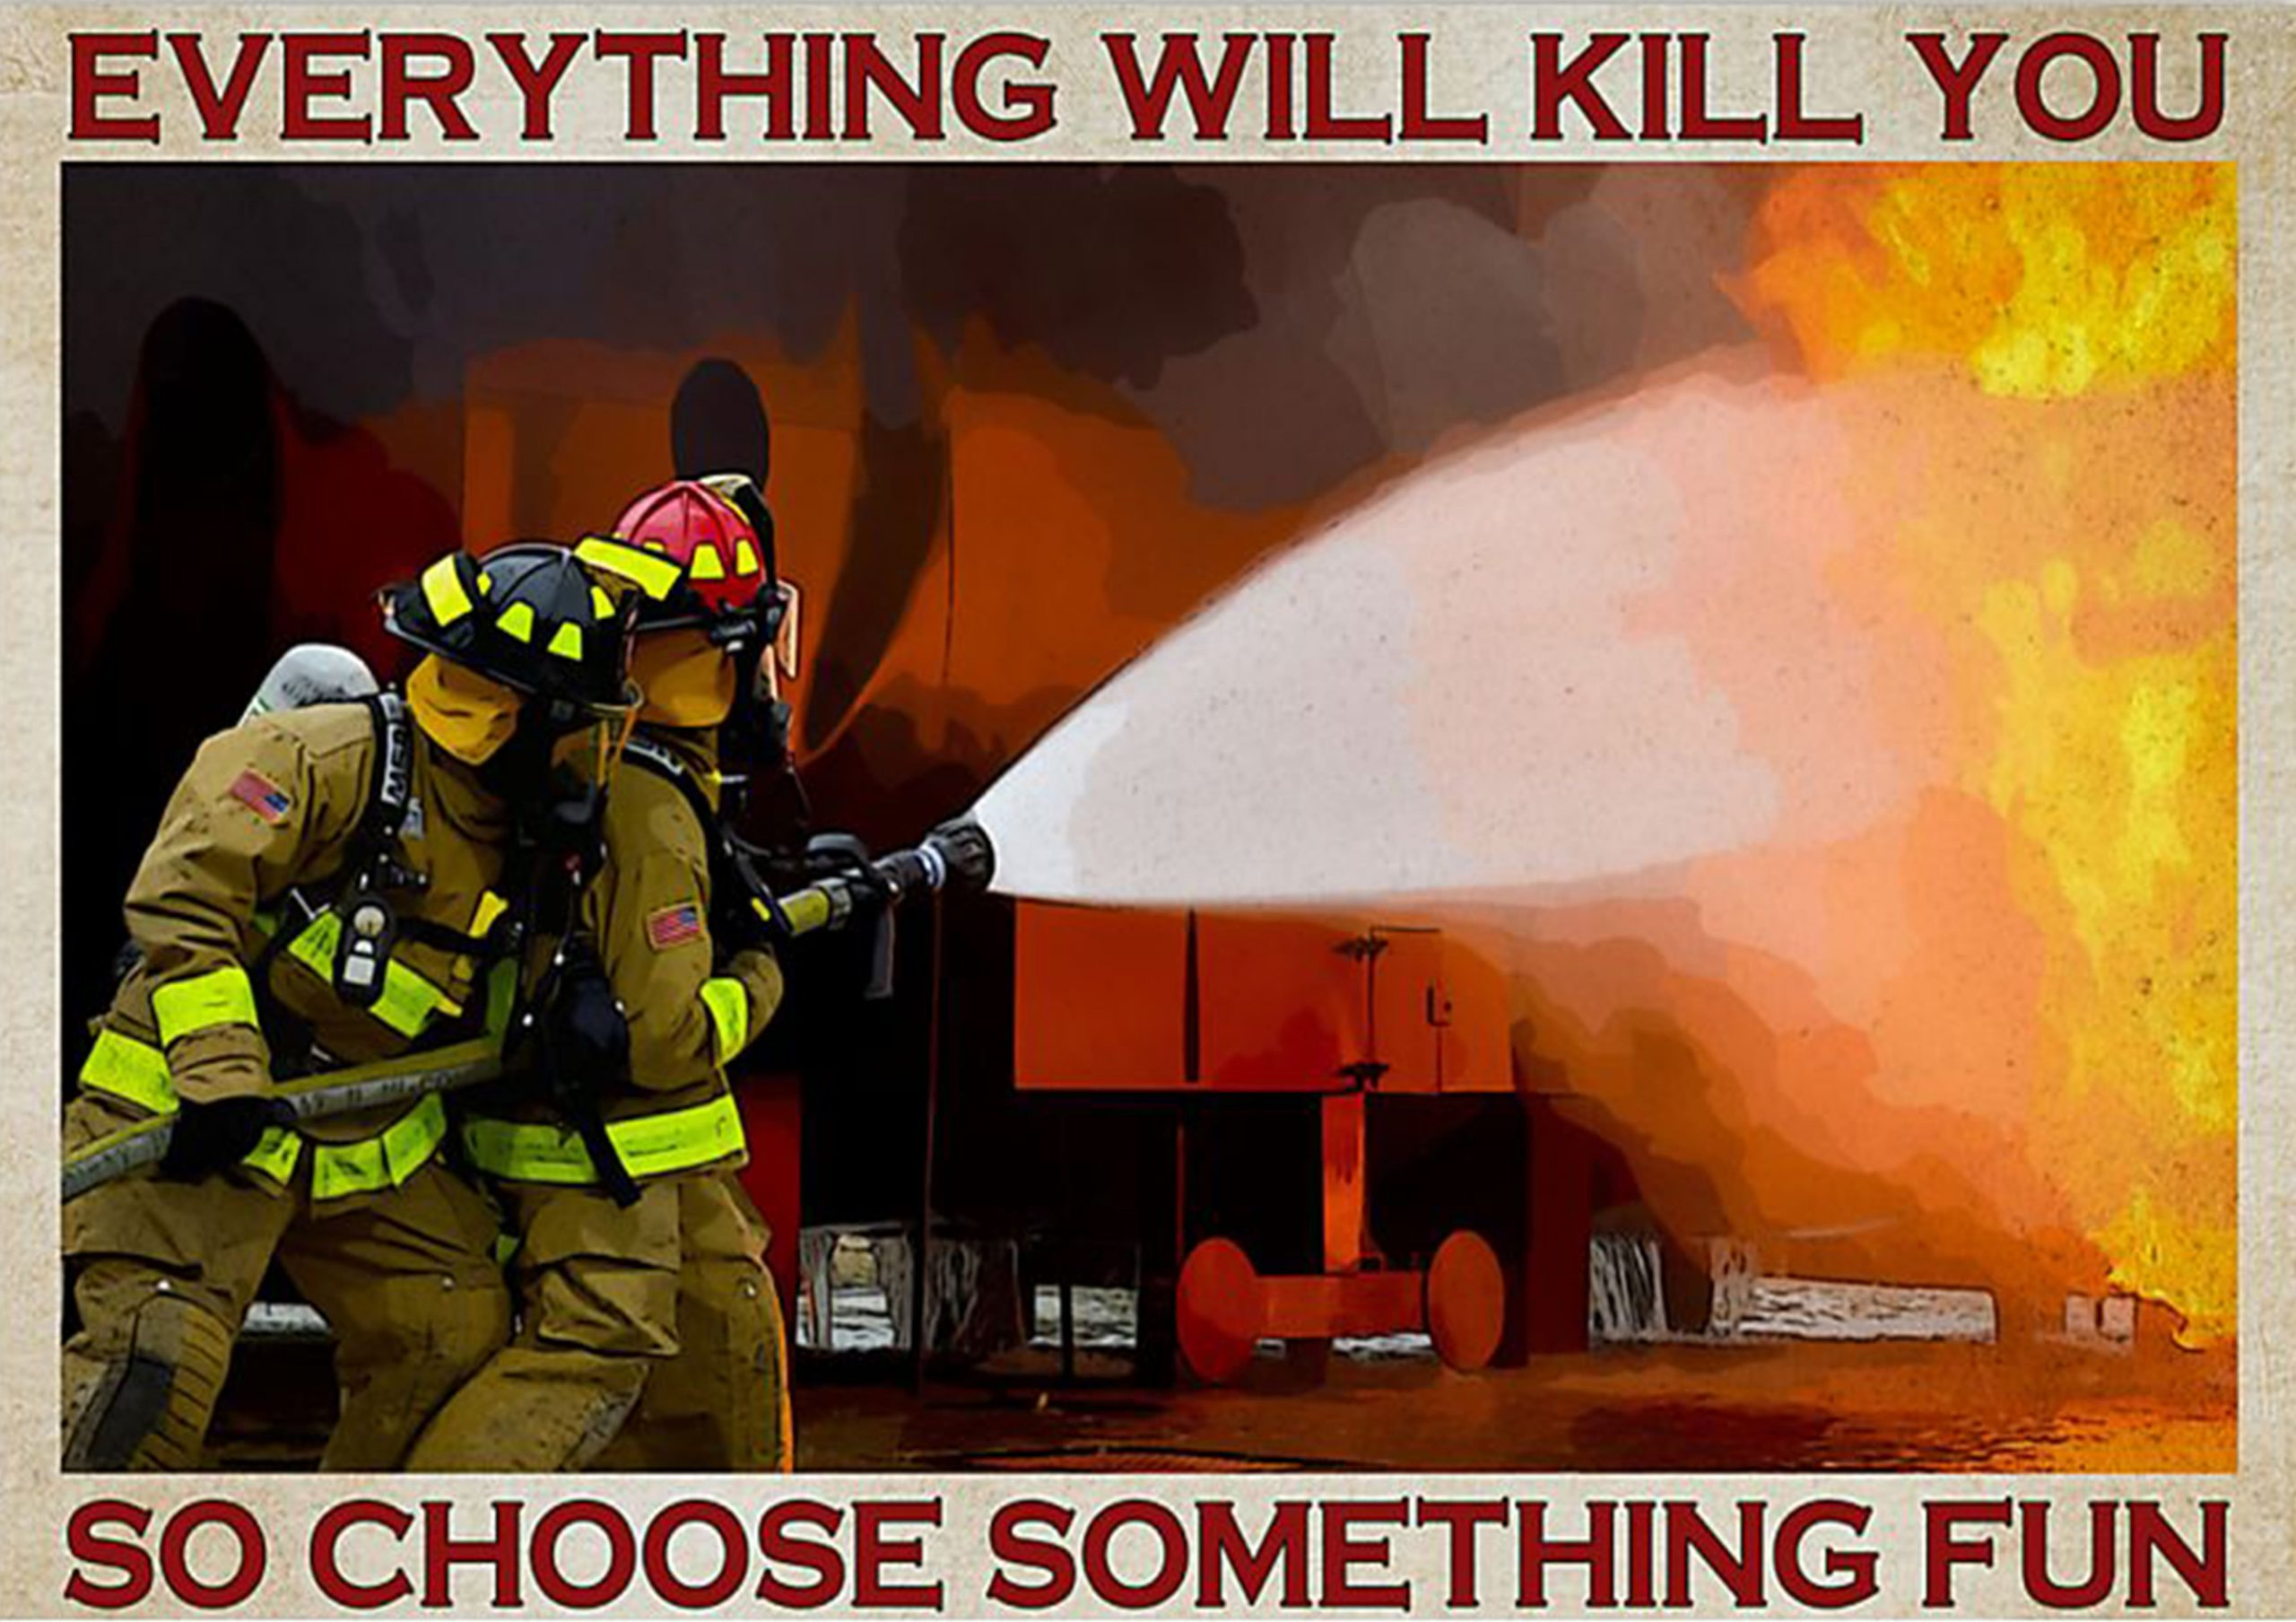 vintage firefighter everything will kill you so choose something fun poster 1 - Copy (2)